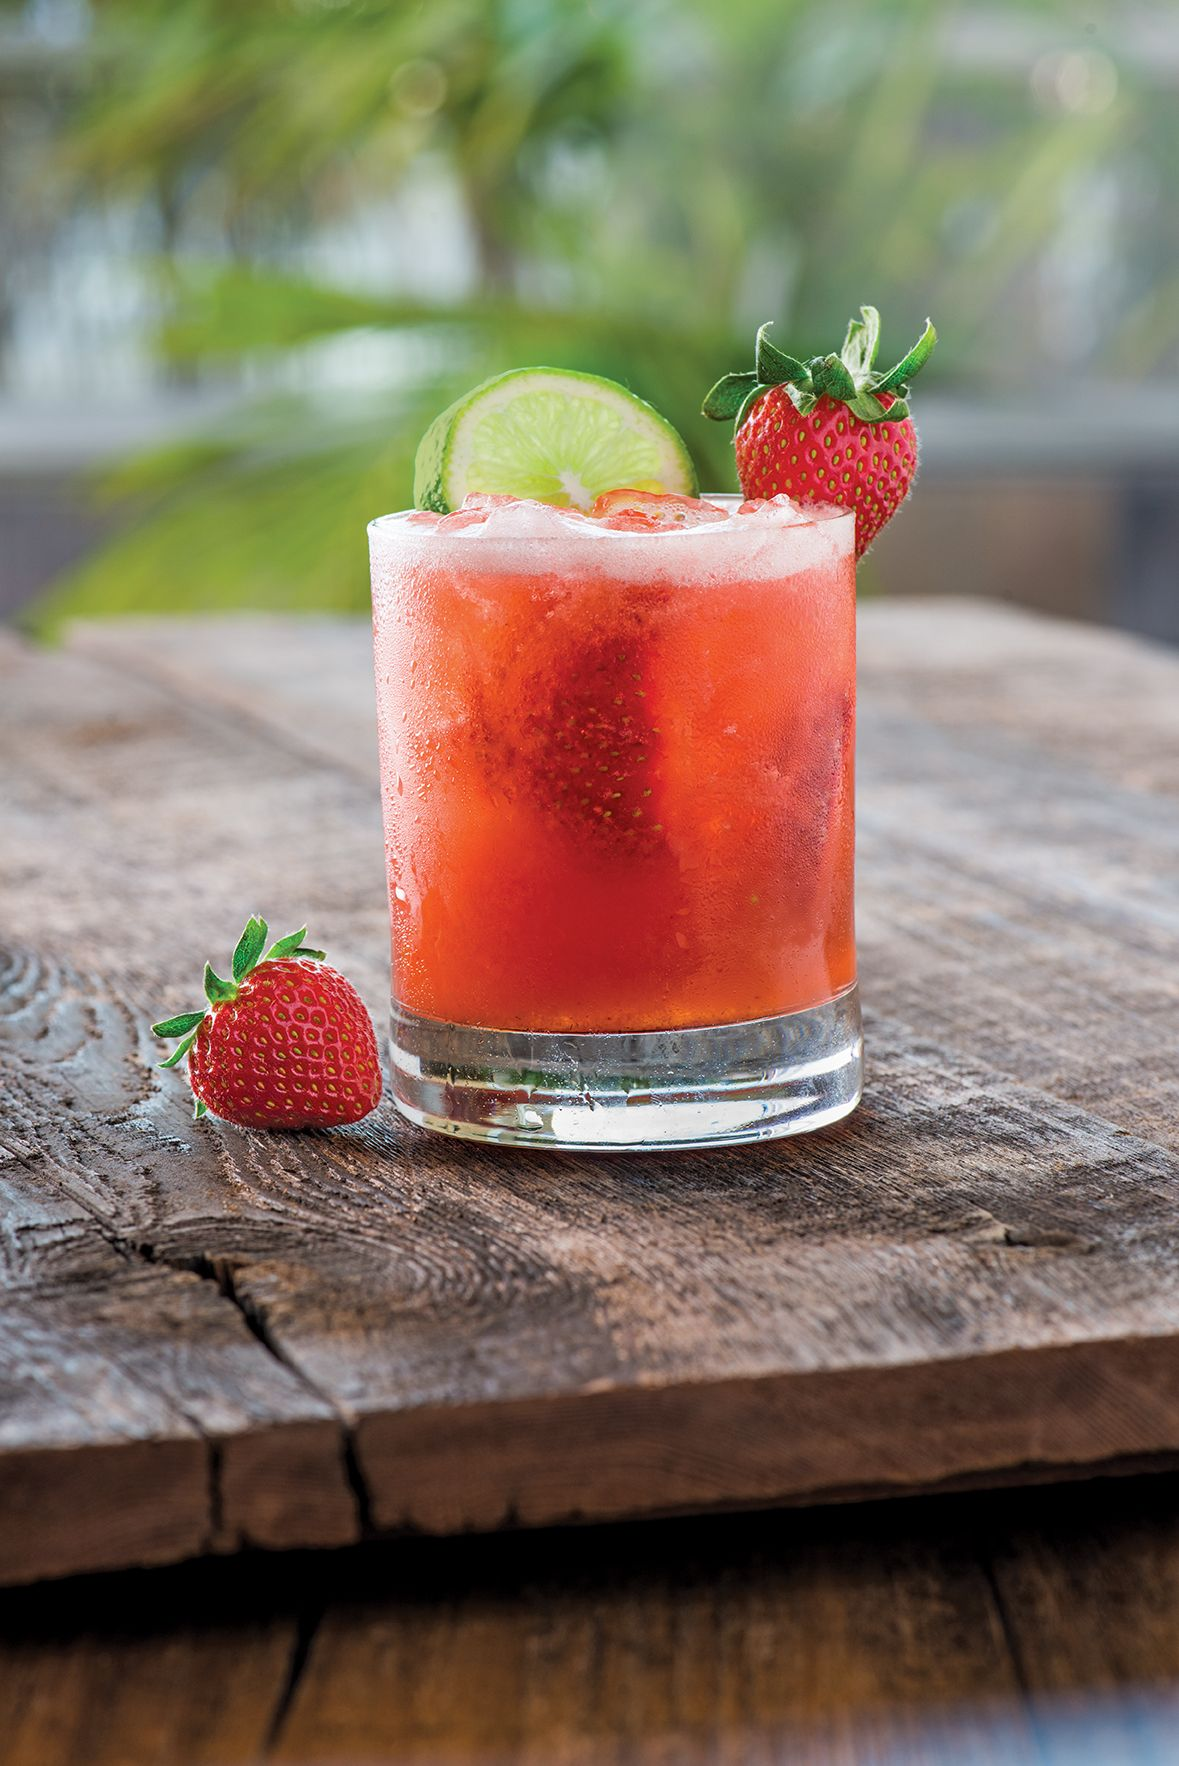 Pin By Memorial City On Good Eats California Pizza Kitchen Lime Margarita Strawberry Lime